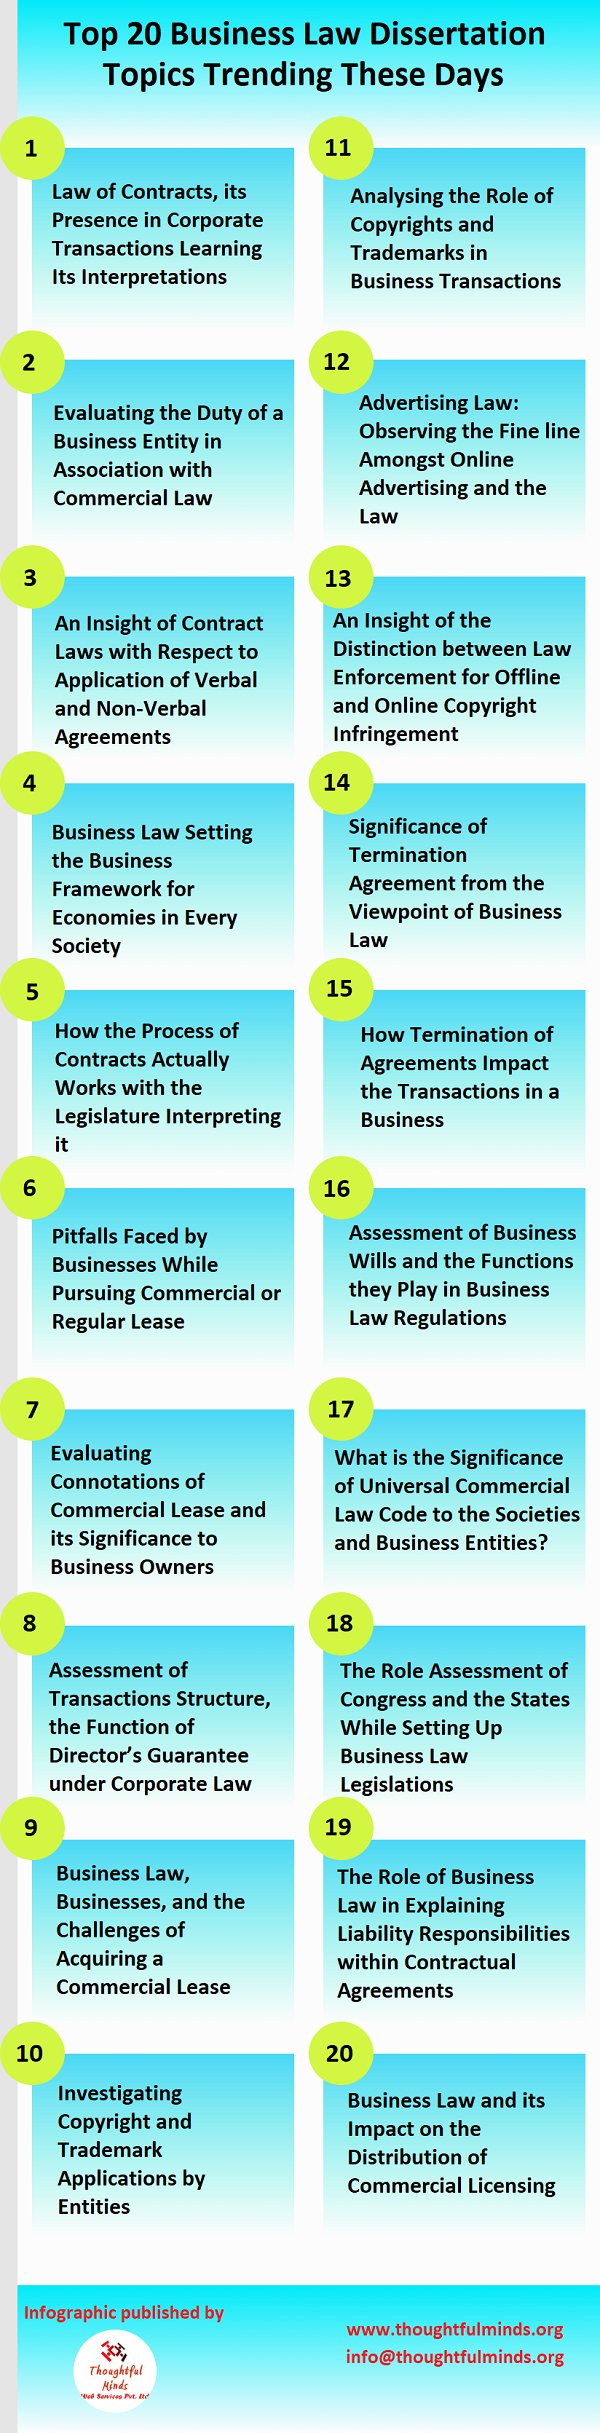 Business Law Dissertation Help Infographic